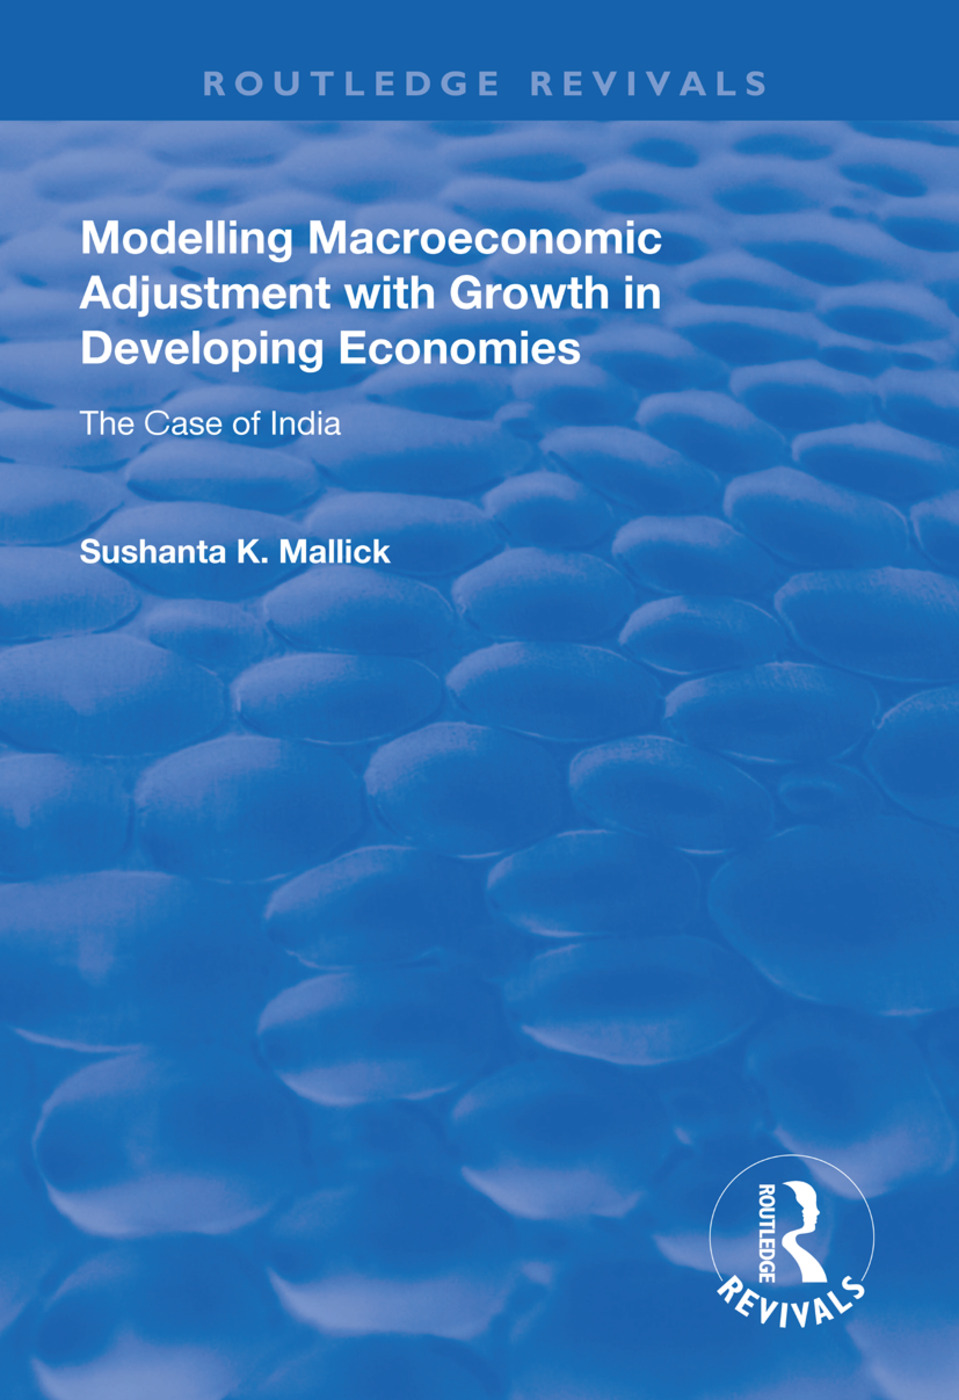 Modelling Macroeconomic Adjustment with Growth in Developing Economies